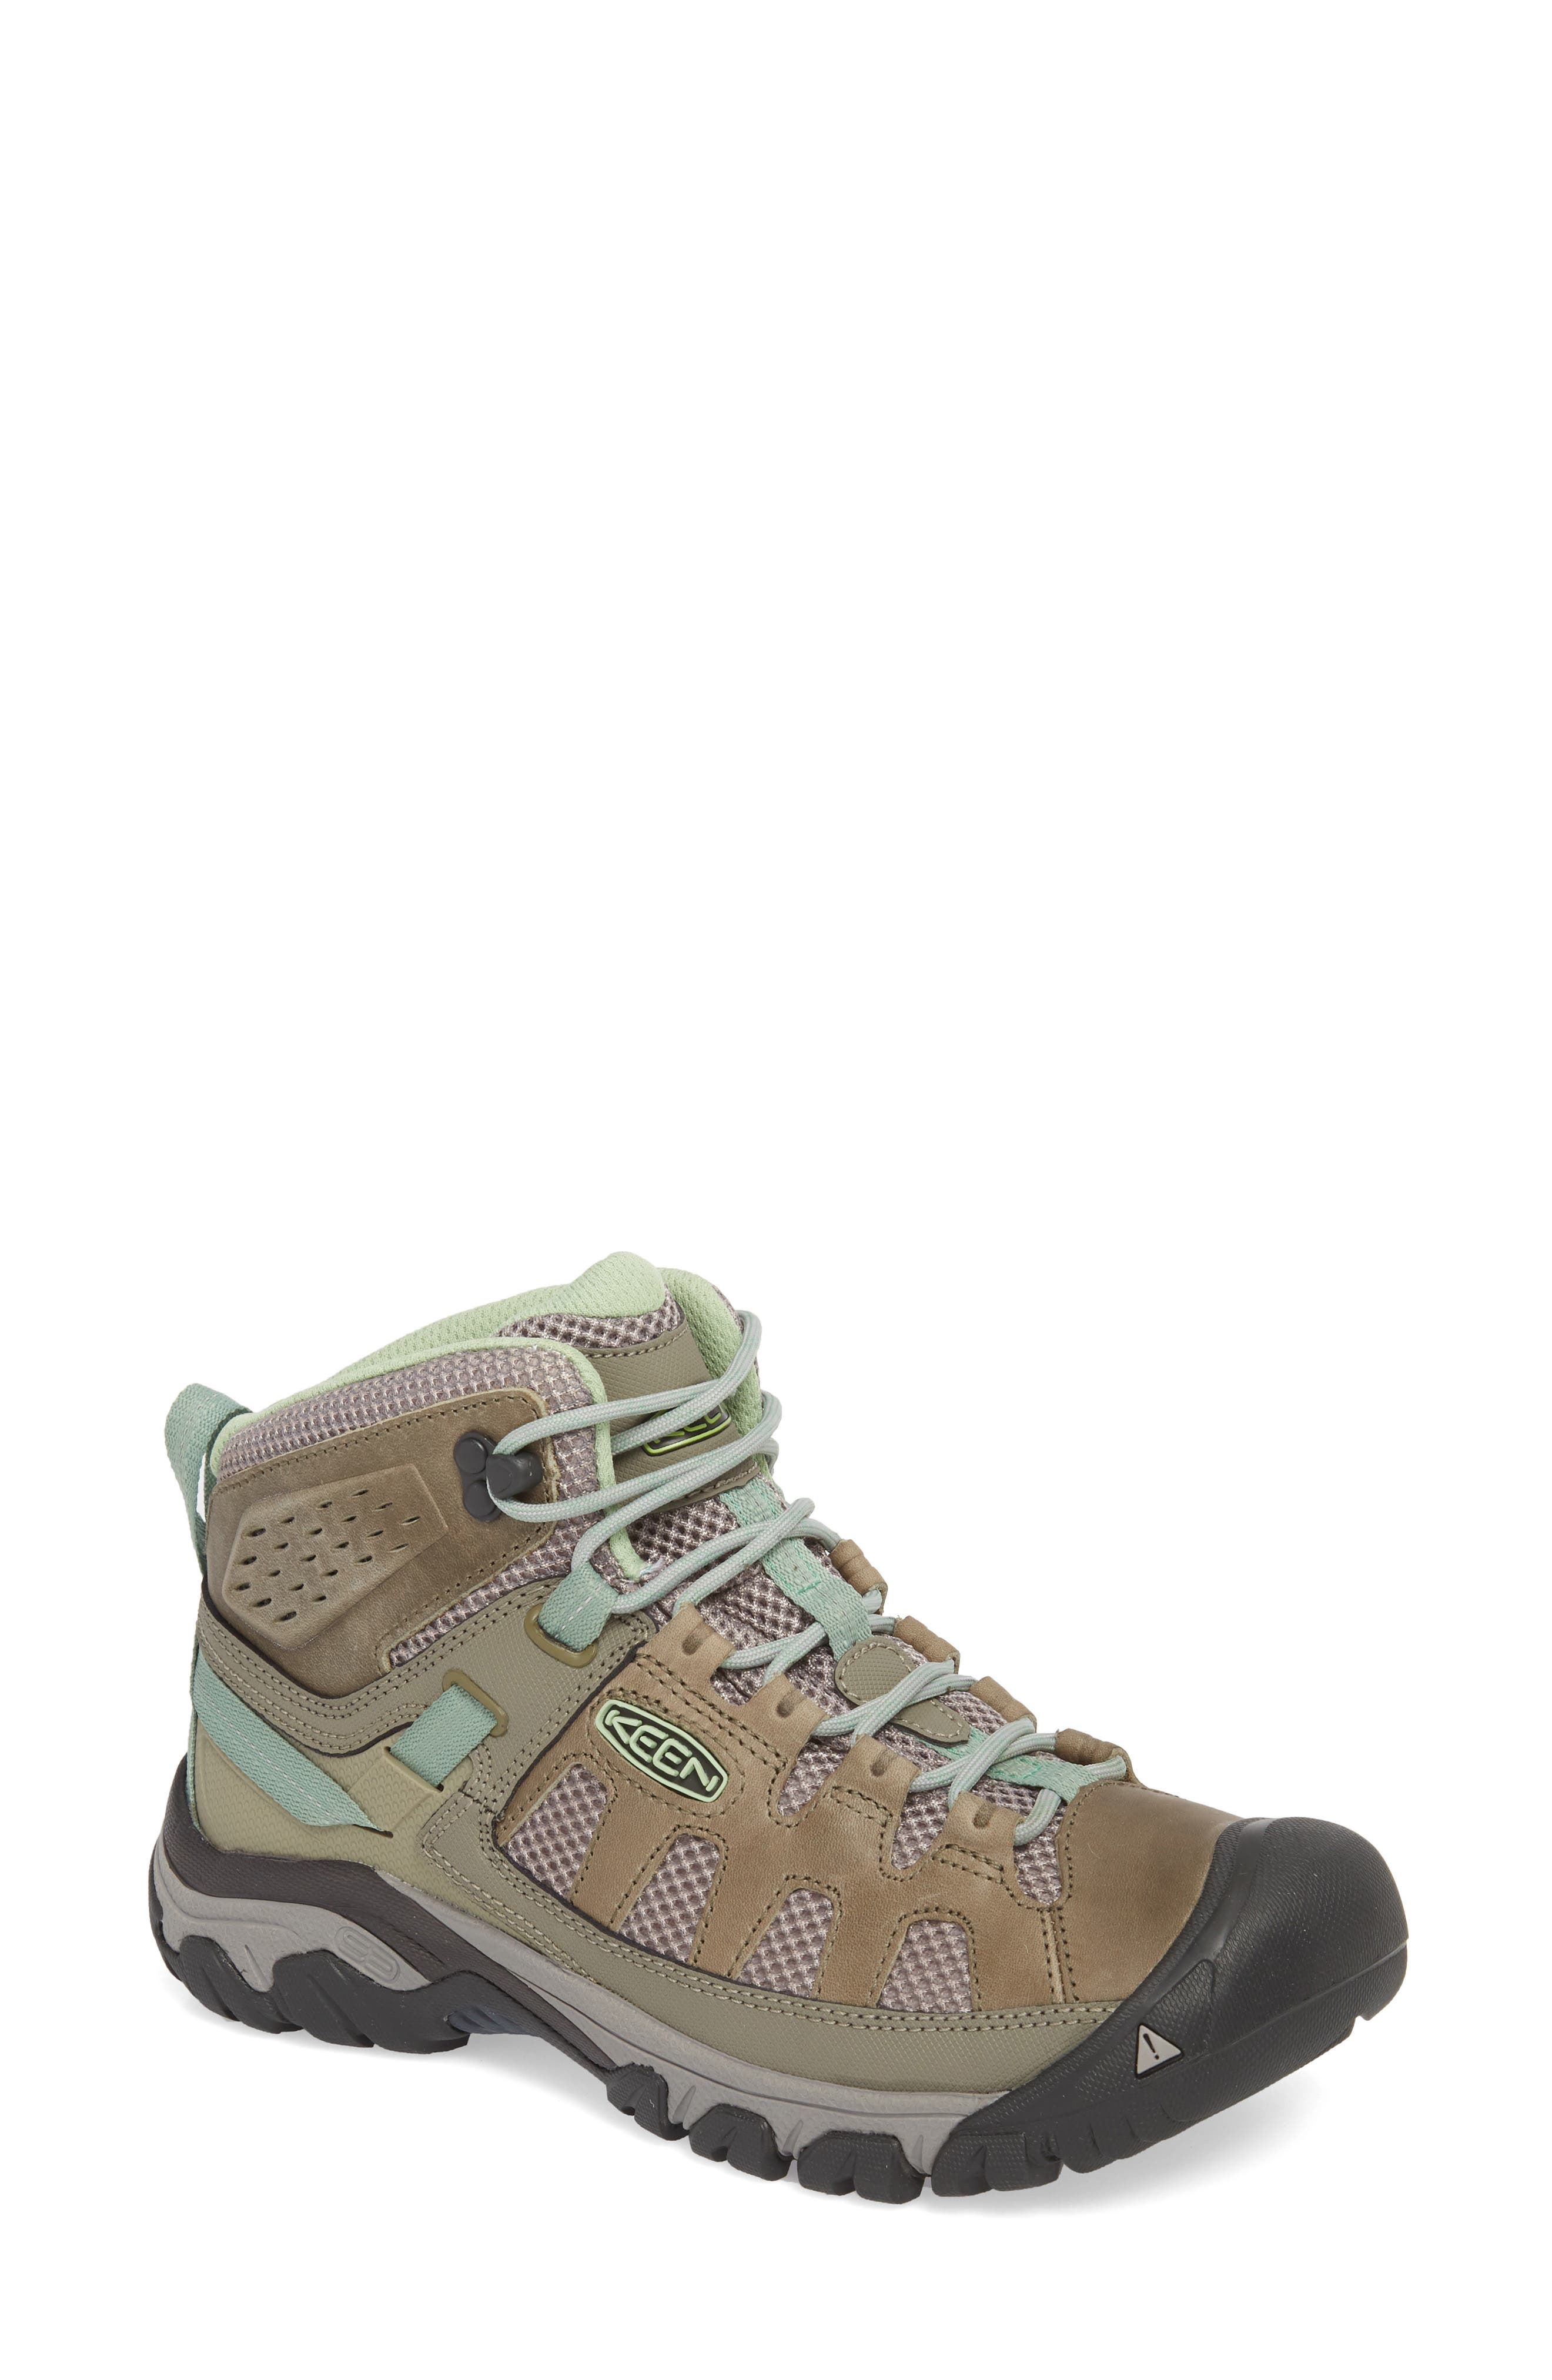 trekking comfortable shoes ld boots sikkim women beige hiking gtx millet comforter most